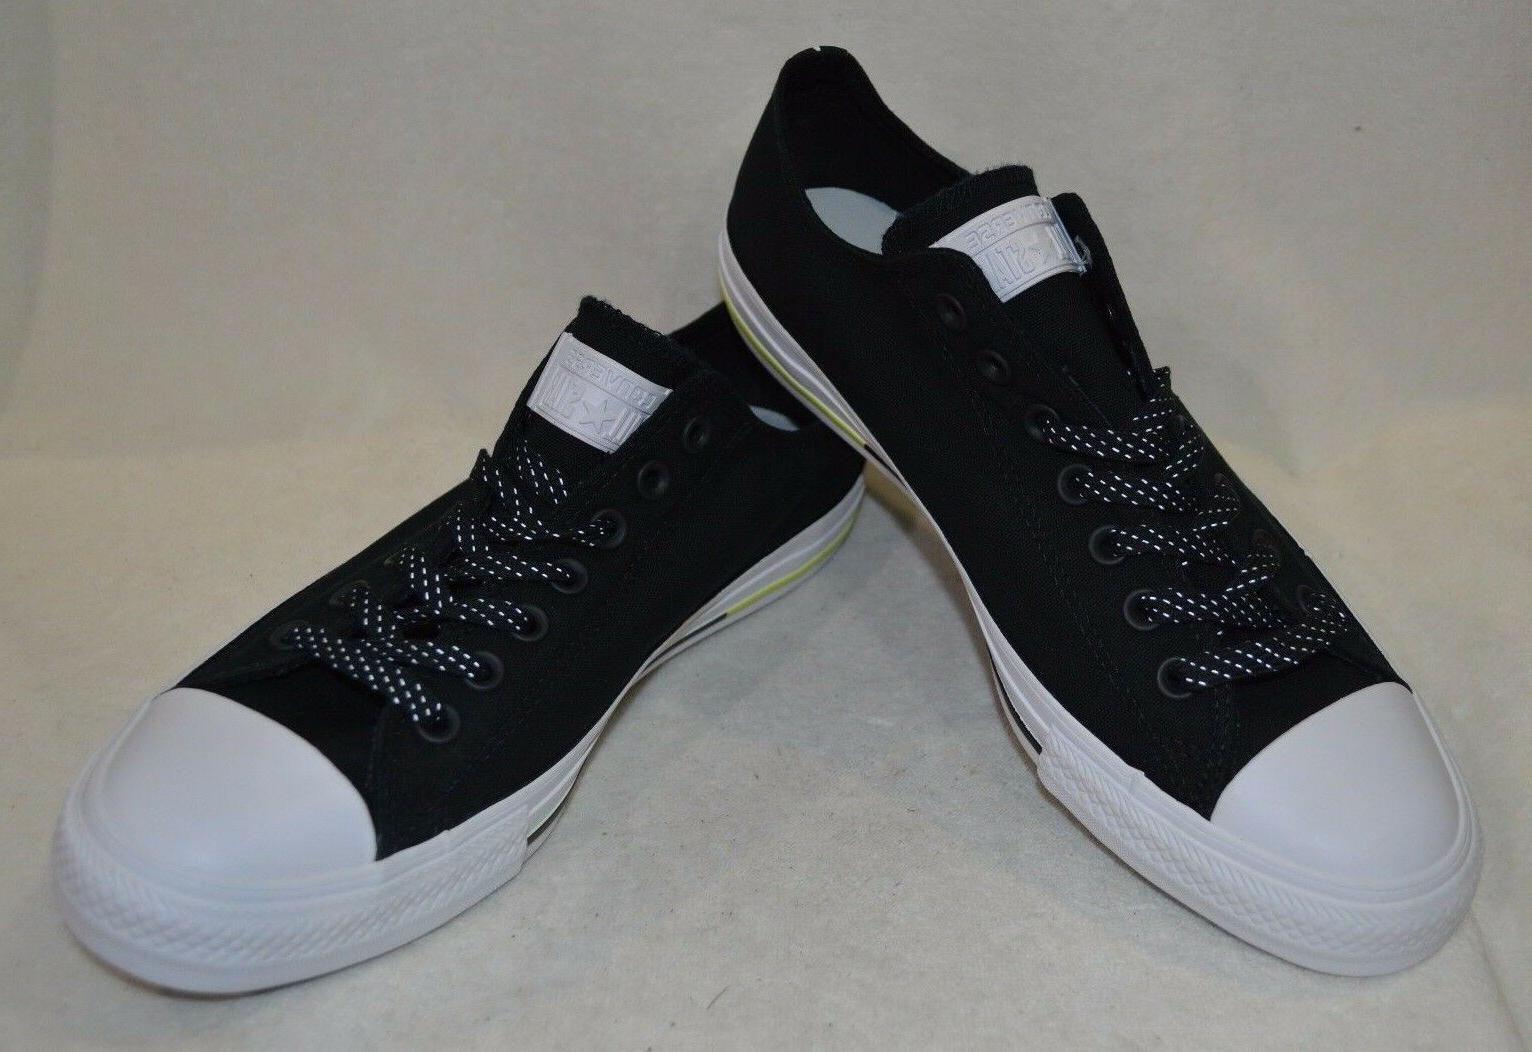 Converse OX Water-Repellent Black White Sneakers - 9 /